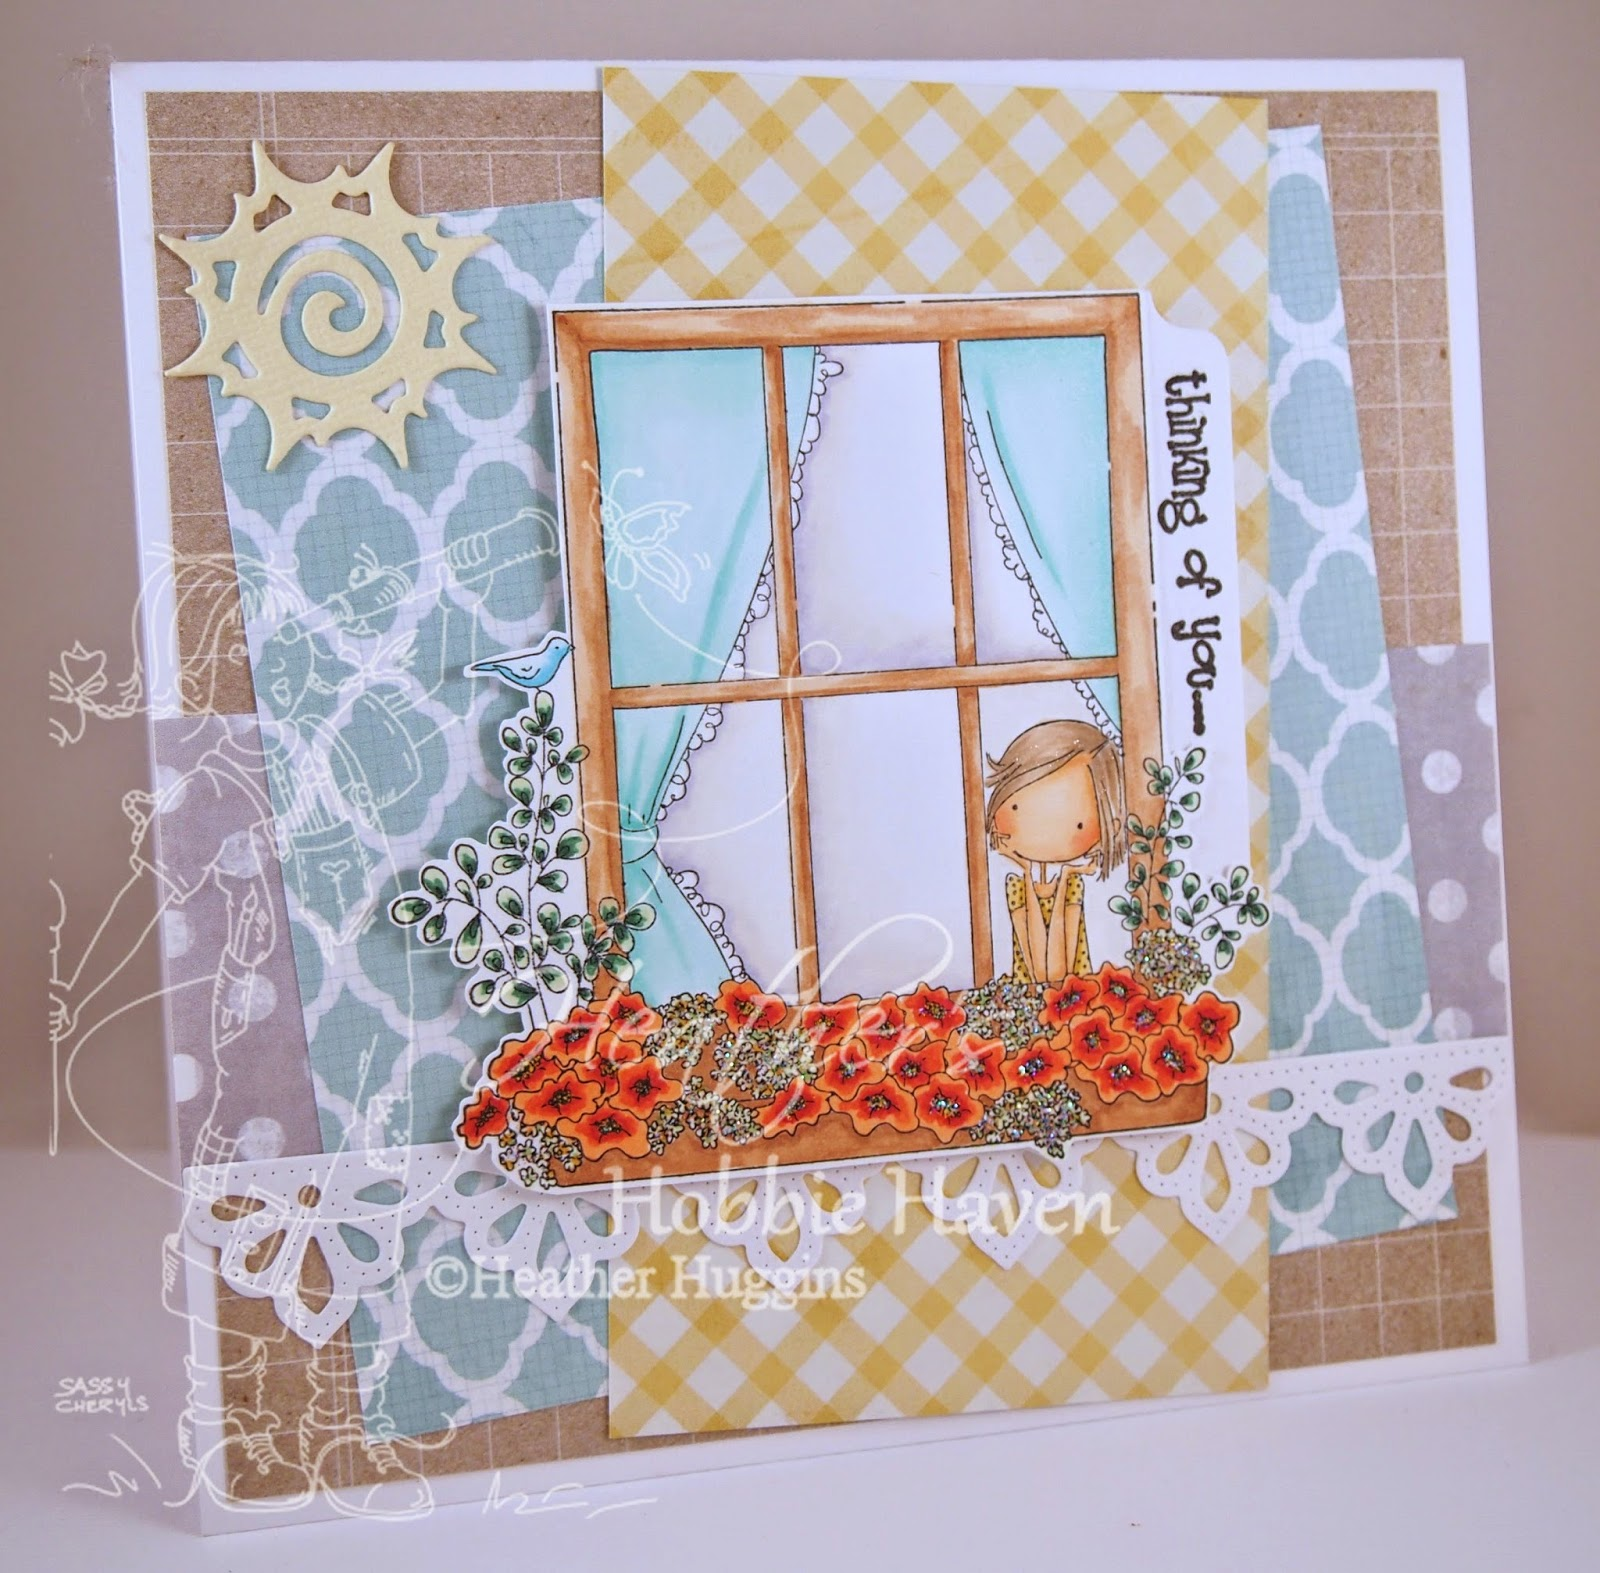 Heather's Hobbie Haven - Winnie Peeking Out the Window Card Kit